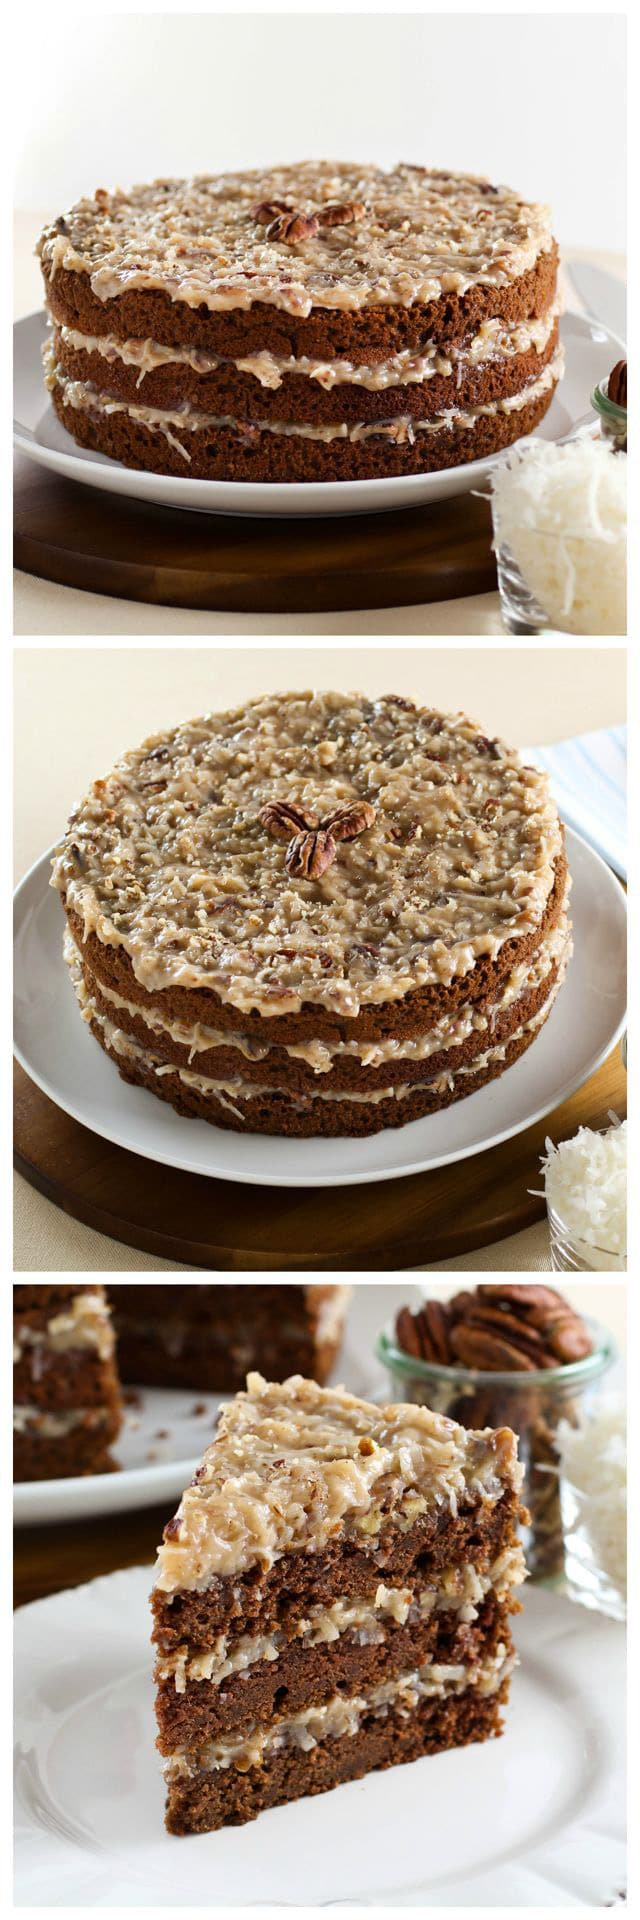 American Cakes: German Chocolate Cake - A traditional recipe and history for German Chocolate Cake from food historian Gil Marks. Chocolate cake layered with coconut-pecan frosting.